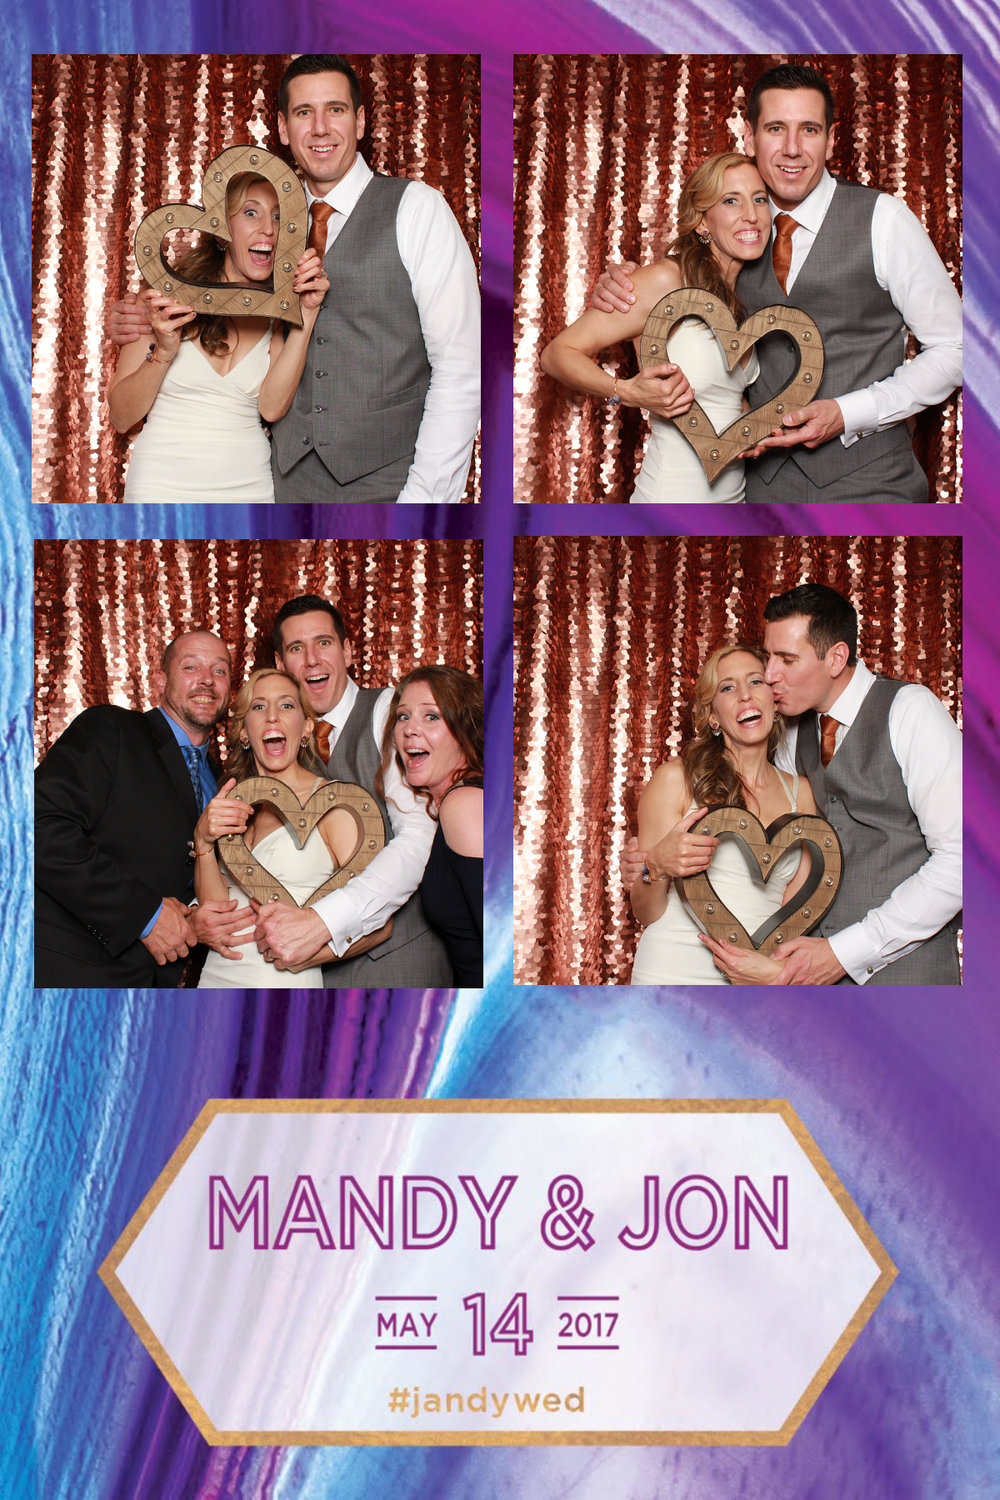 Mandy & Jon May 14, 2017